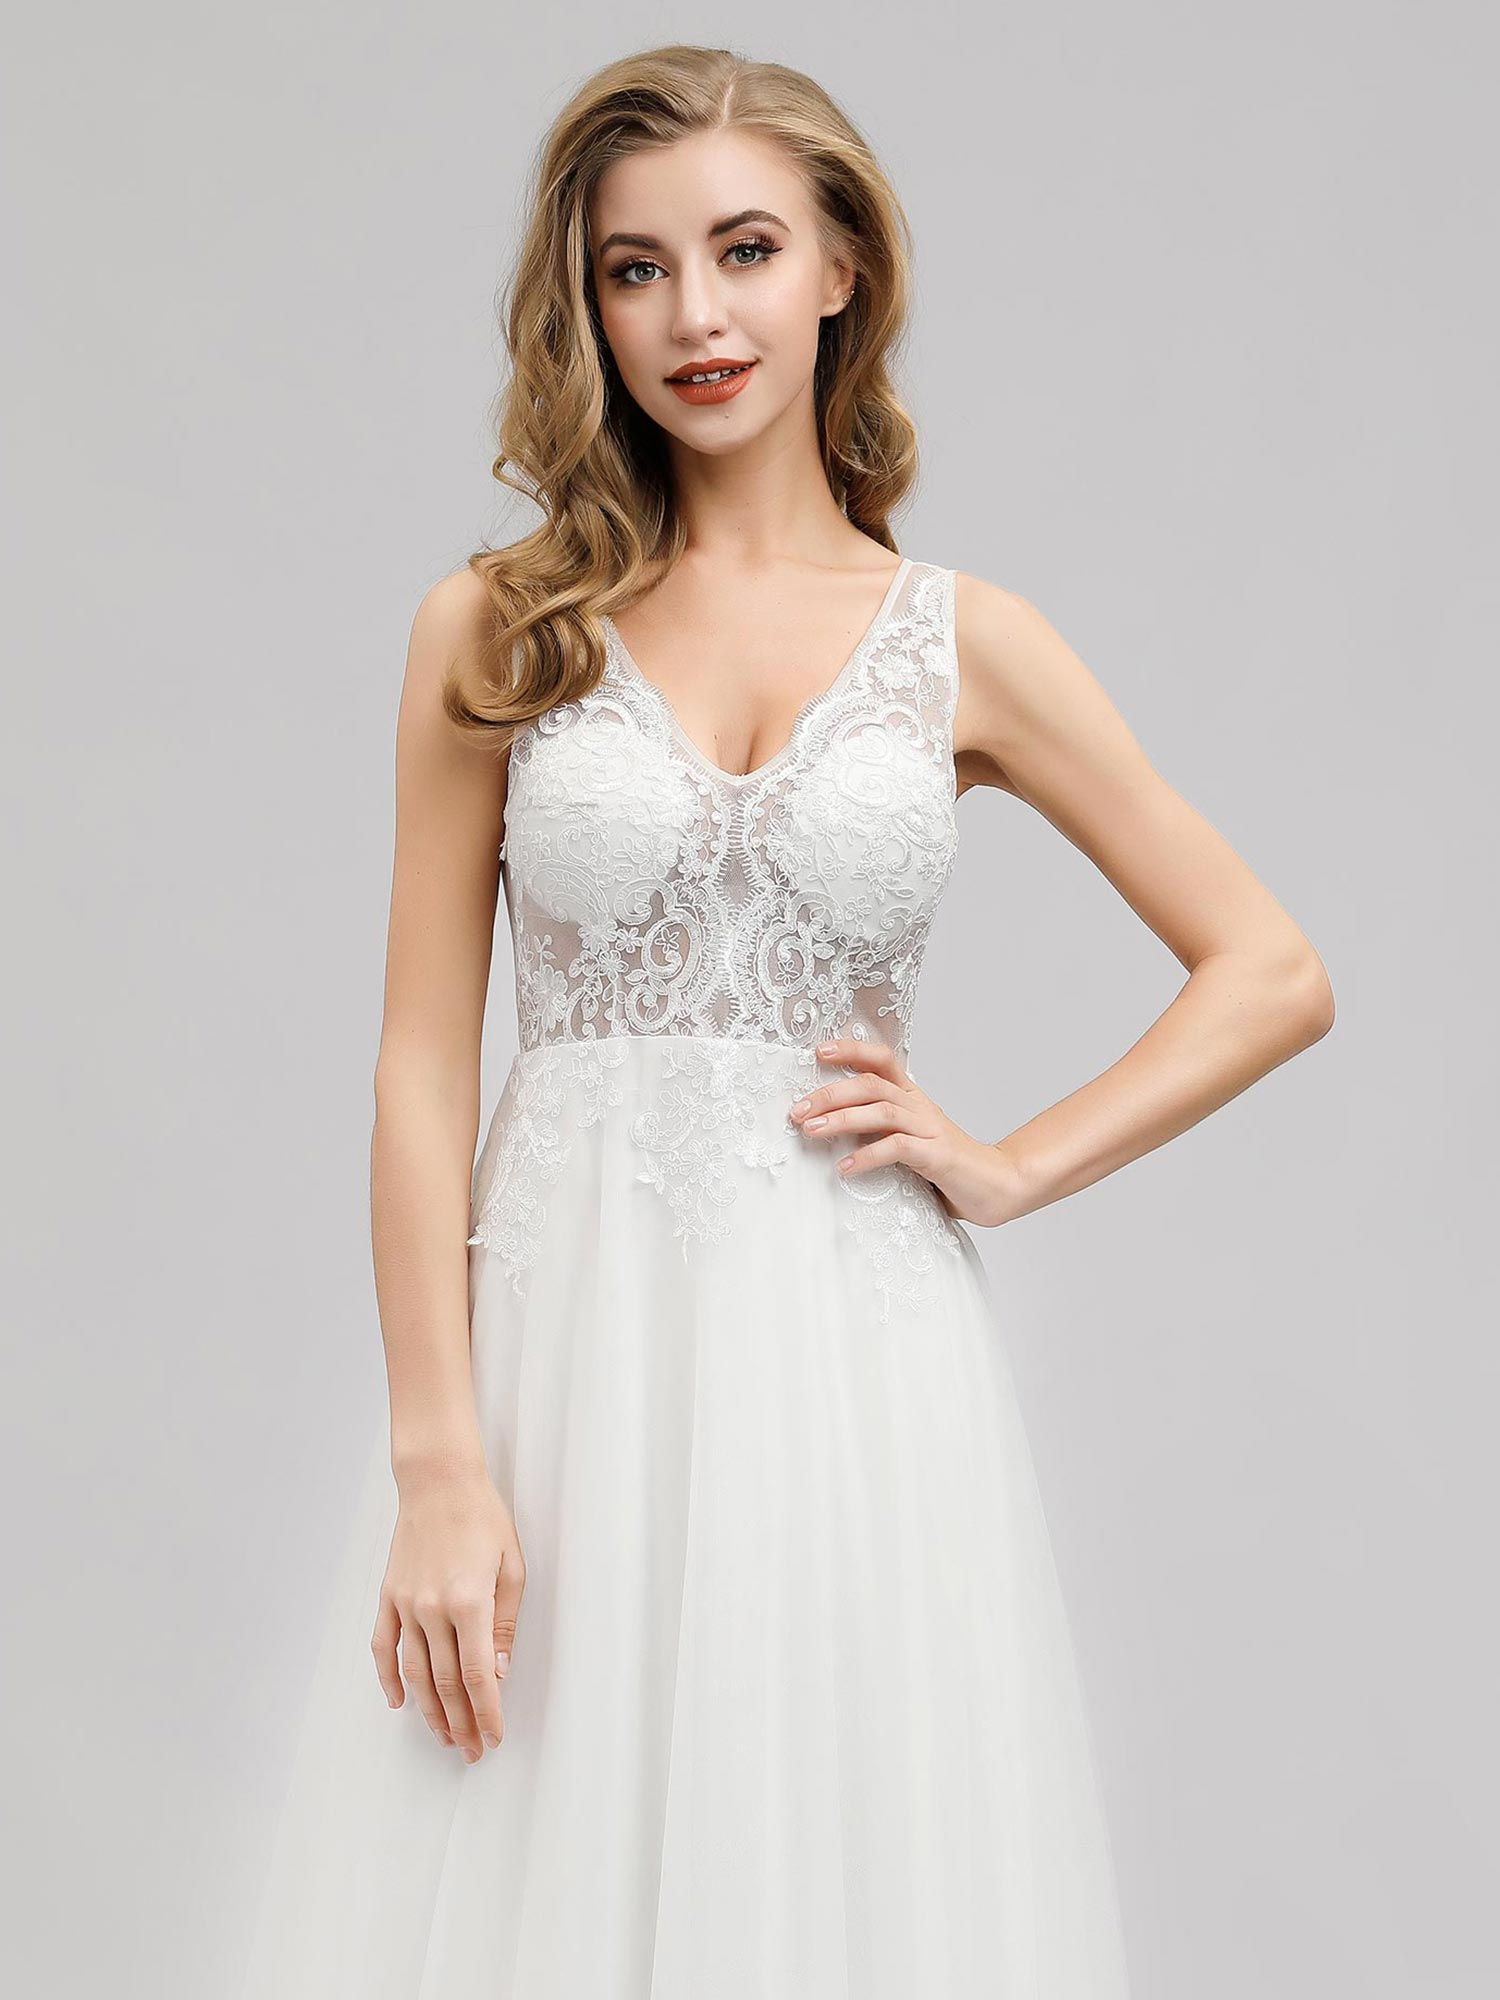 Ever-pretty-Sleeveless-Formal-Lace-Evening-Party-Dress-Cocktail-Homecoming-Prom thumbnail 8